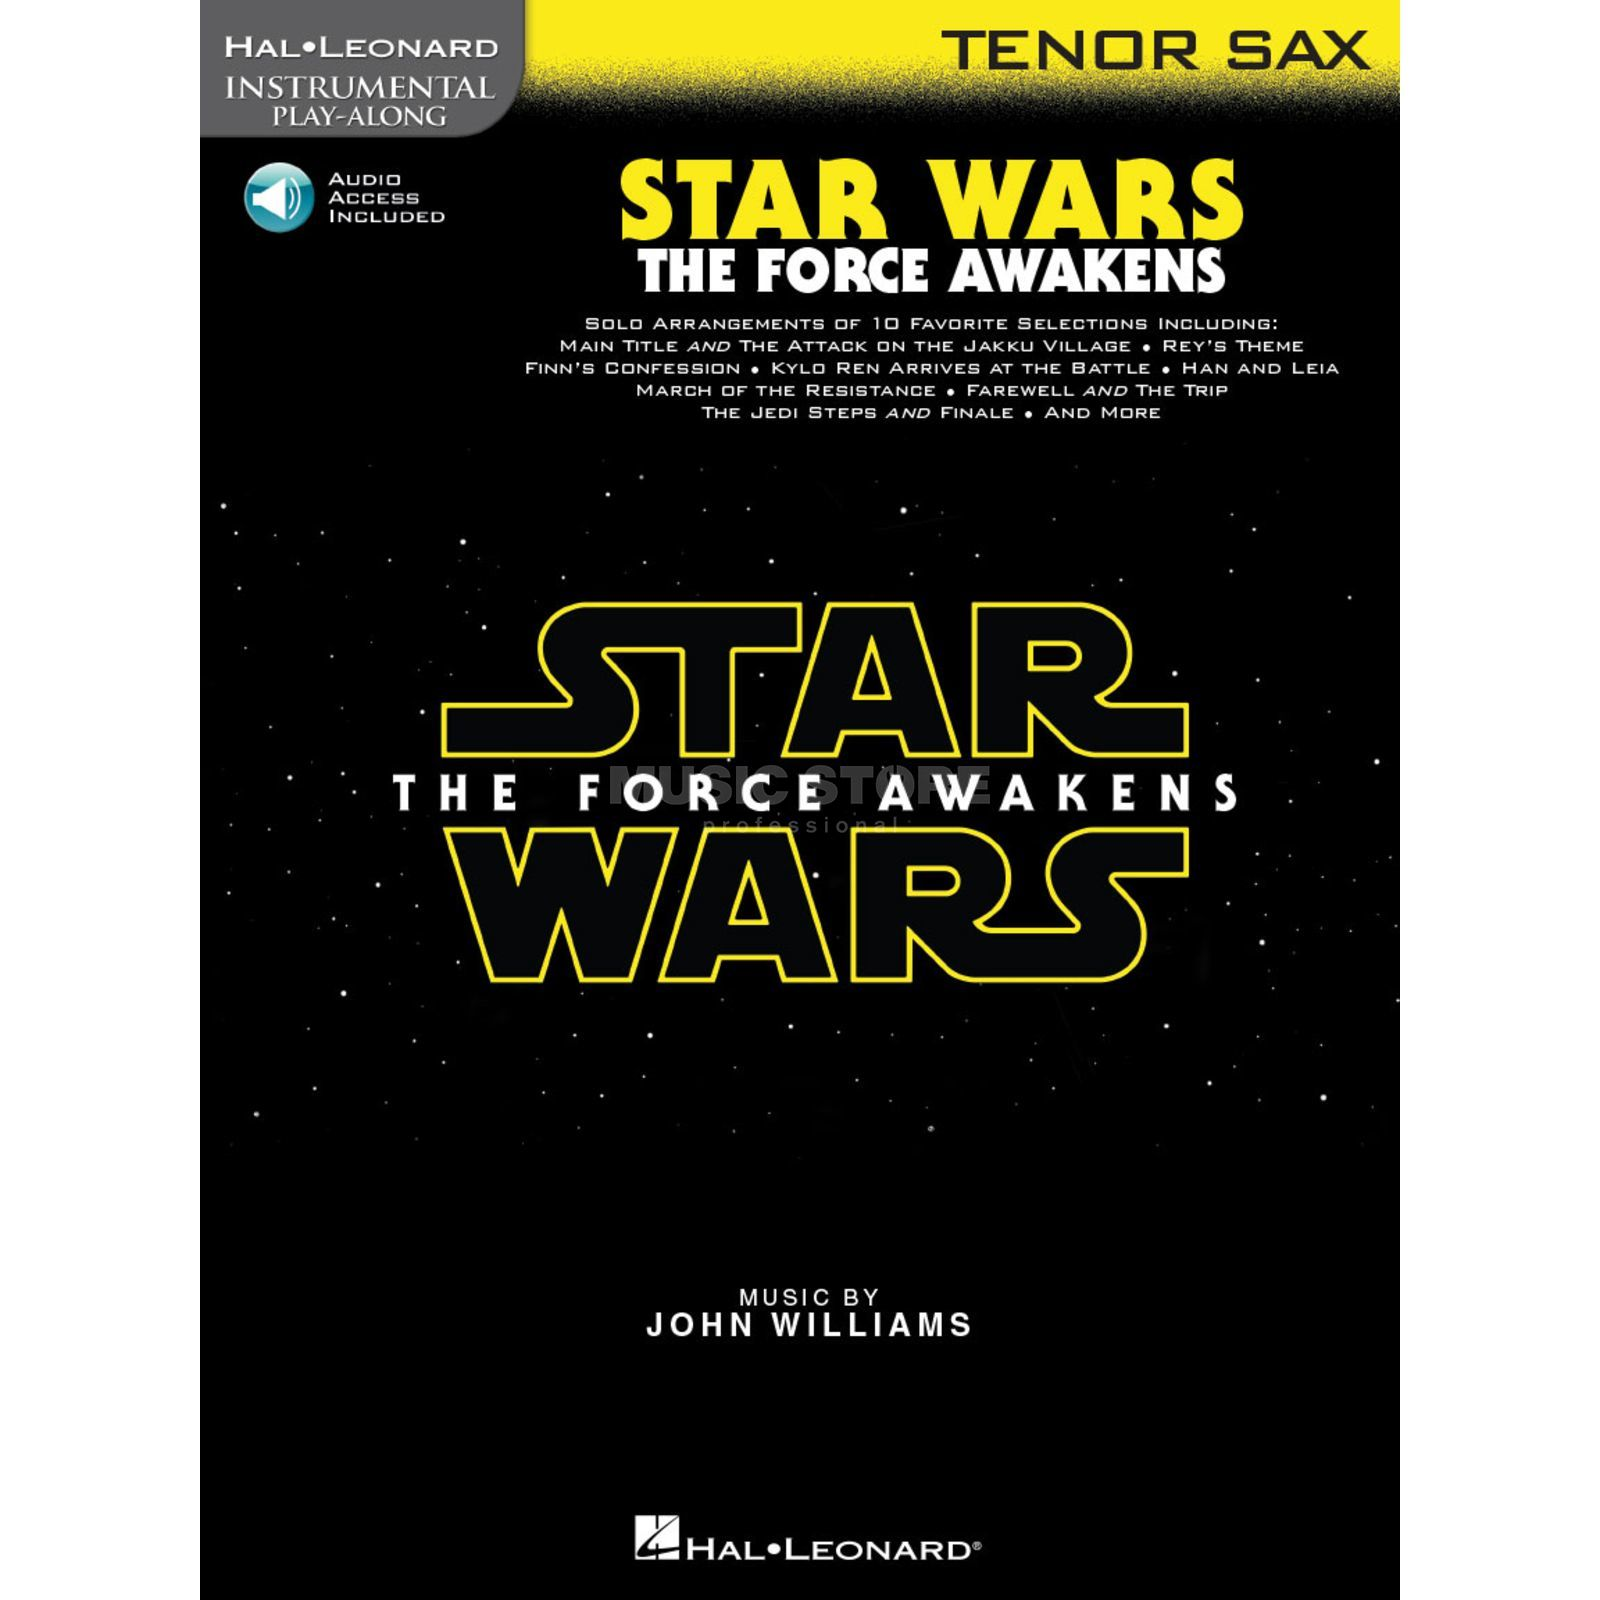 Hal Leonard Instrumental Play-Along: Star Wars - The Force Awakens - Tenor Saxophone Image du produit